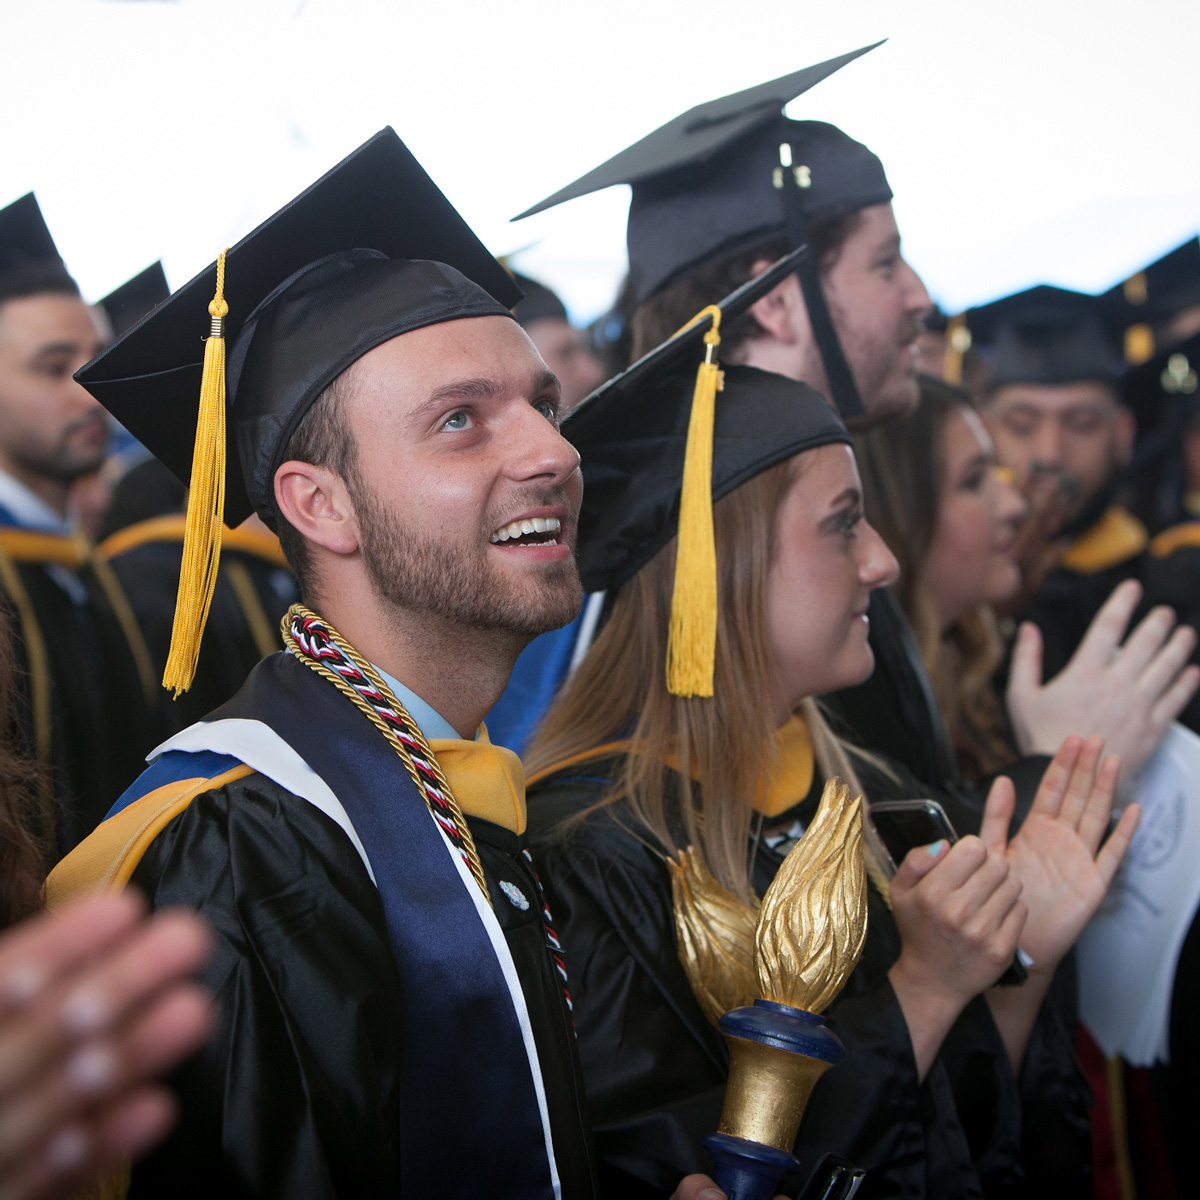 Jonathan holding the Suffolk torch in the crowd wearing his cap and gown during Commencement.